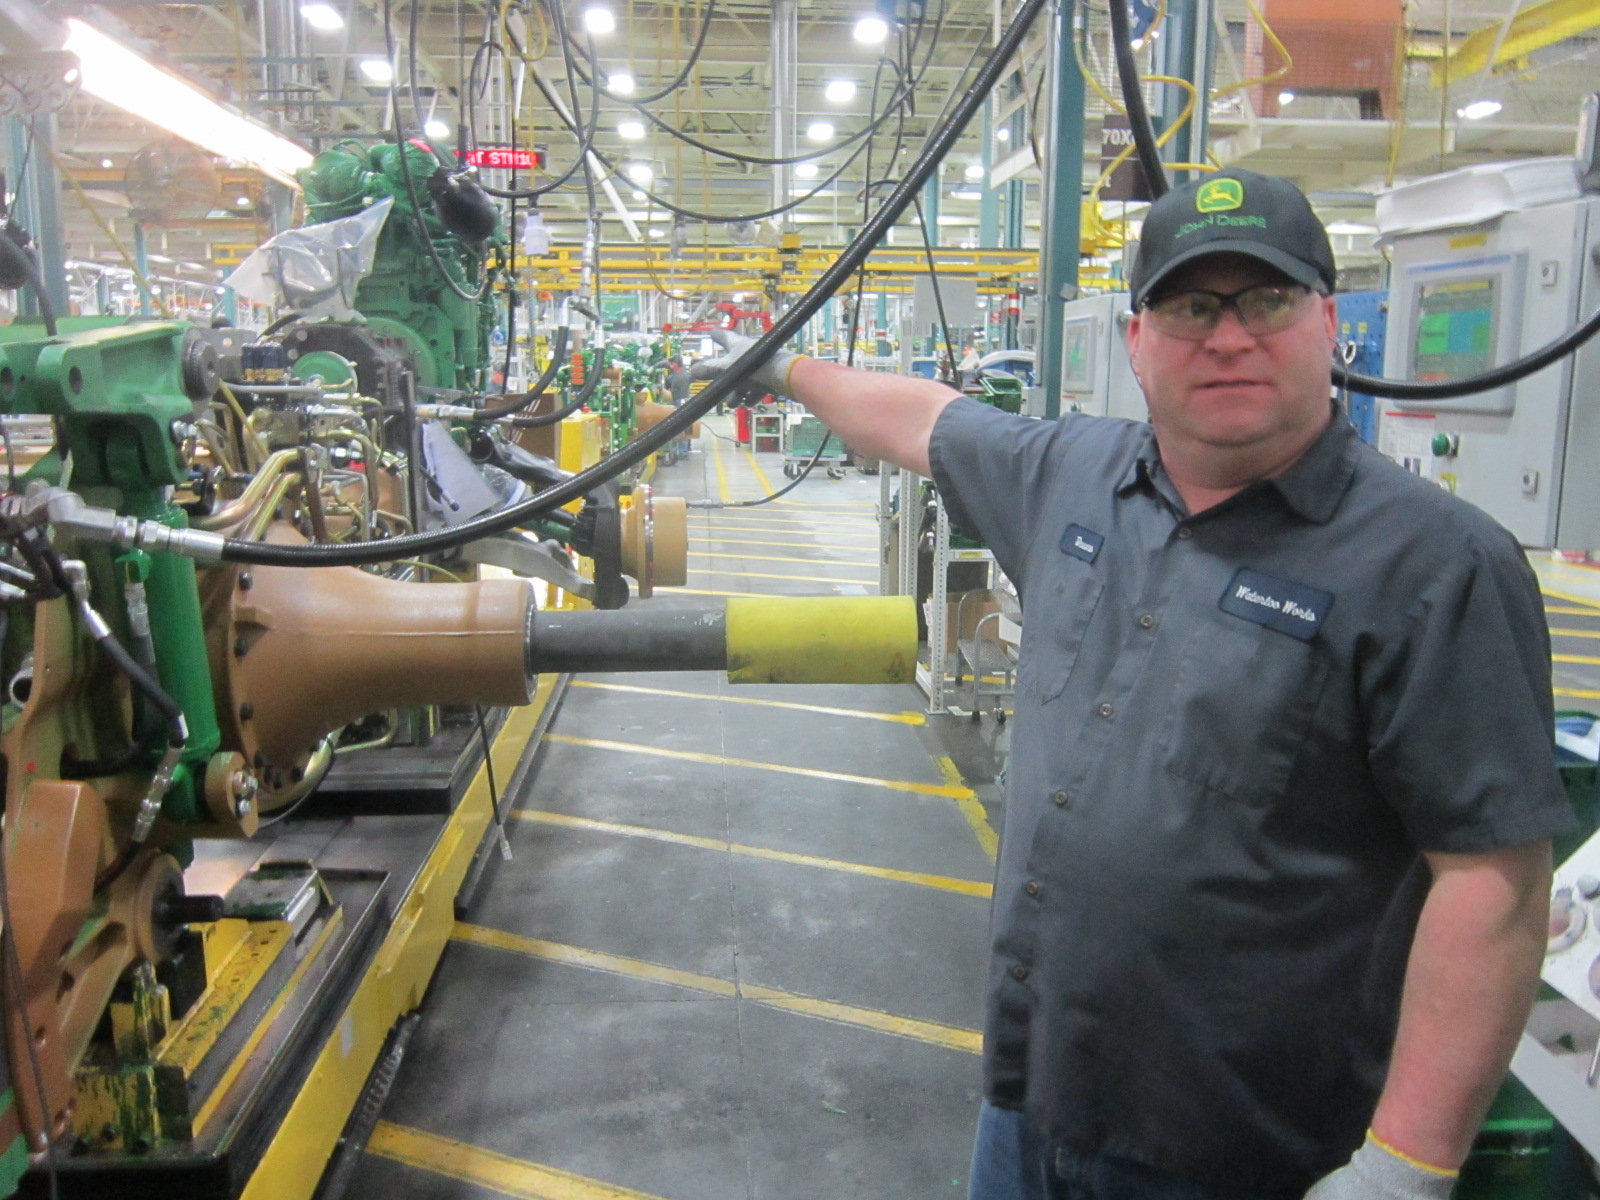 John Deere Assembly Line : Feature photos every iowan should get a chance to see